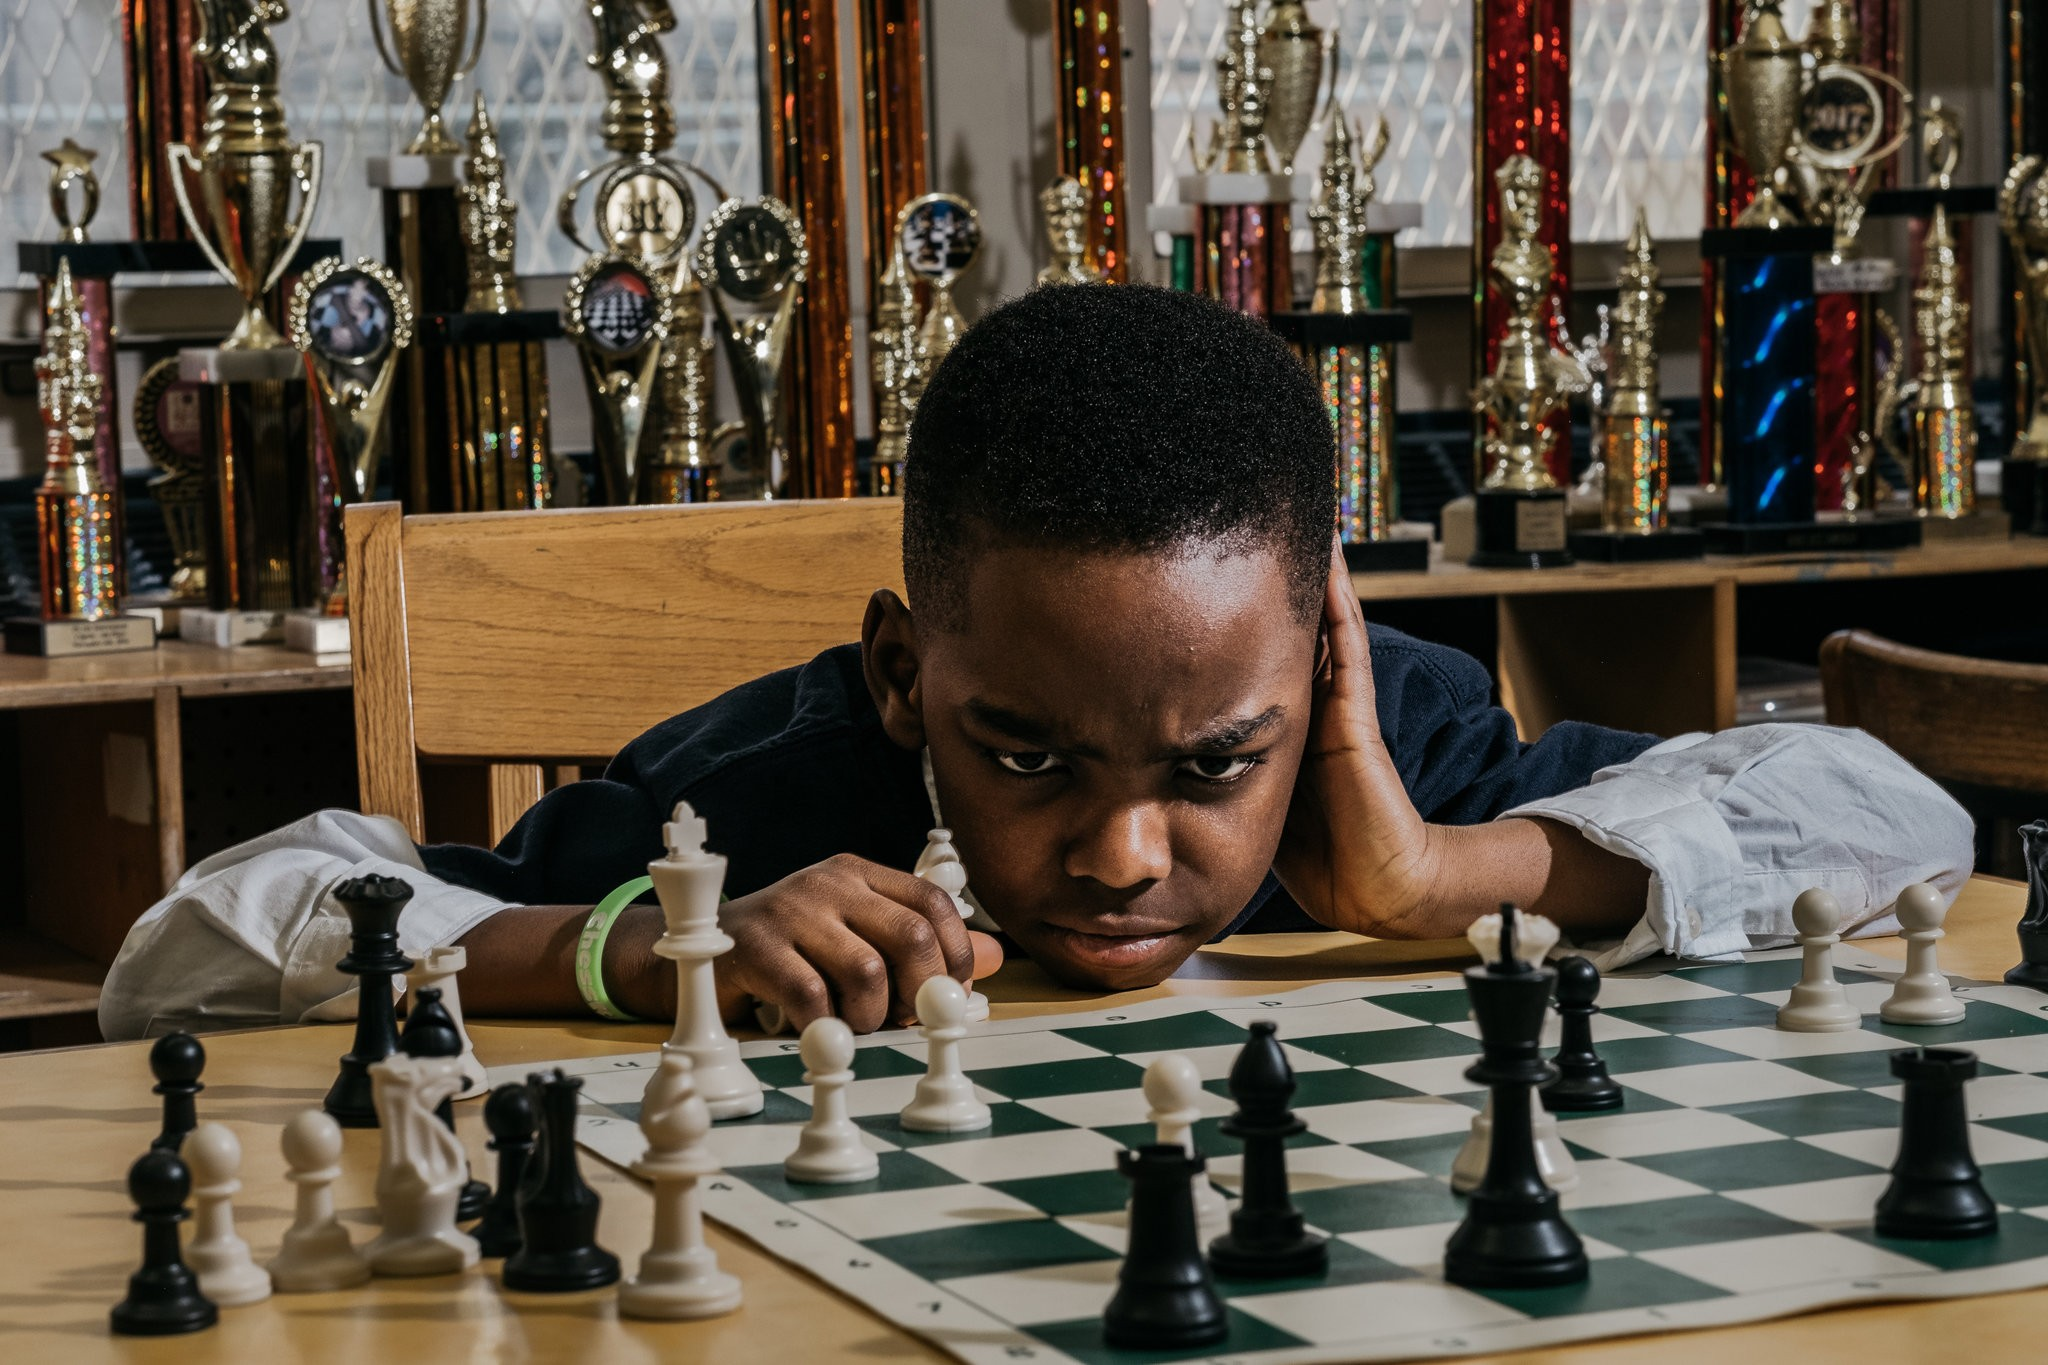 Tanitoluwa Adewumi, who lives with his family in a shelter in New York City, went from chess novice to chess champion in little over a year. (Credit: Christopher Lee for The New York Times)